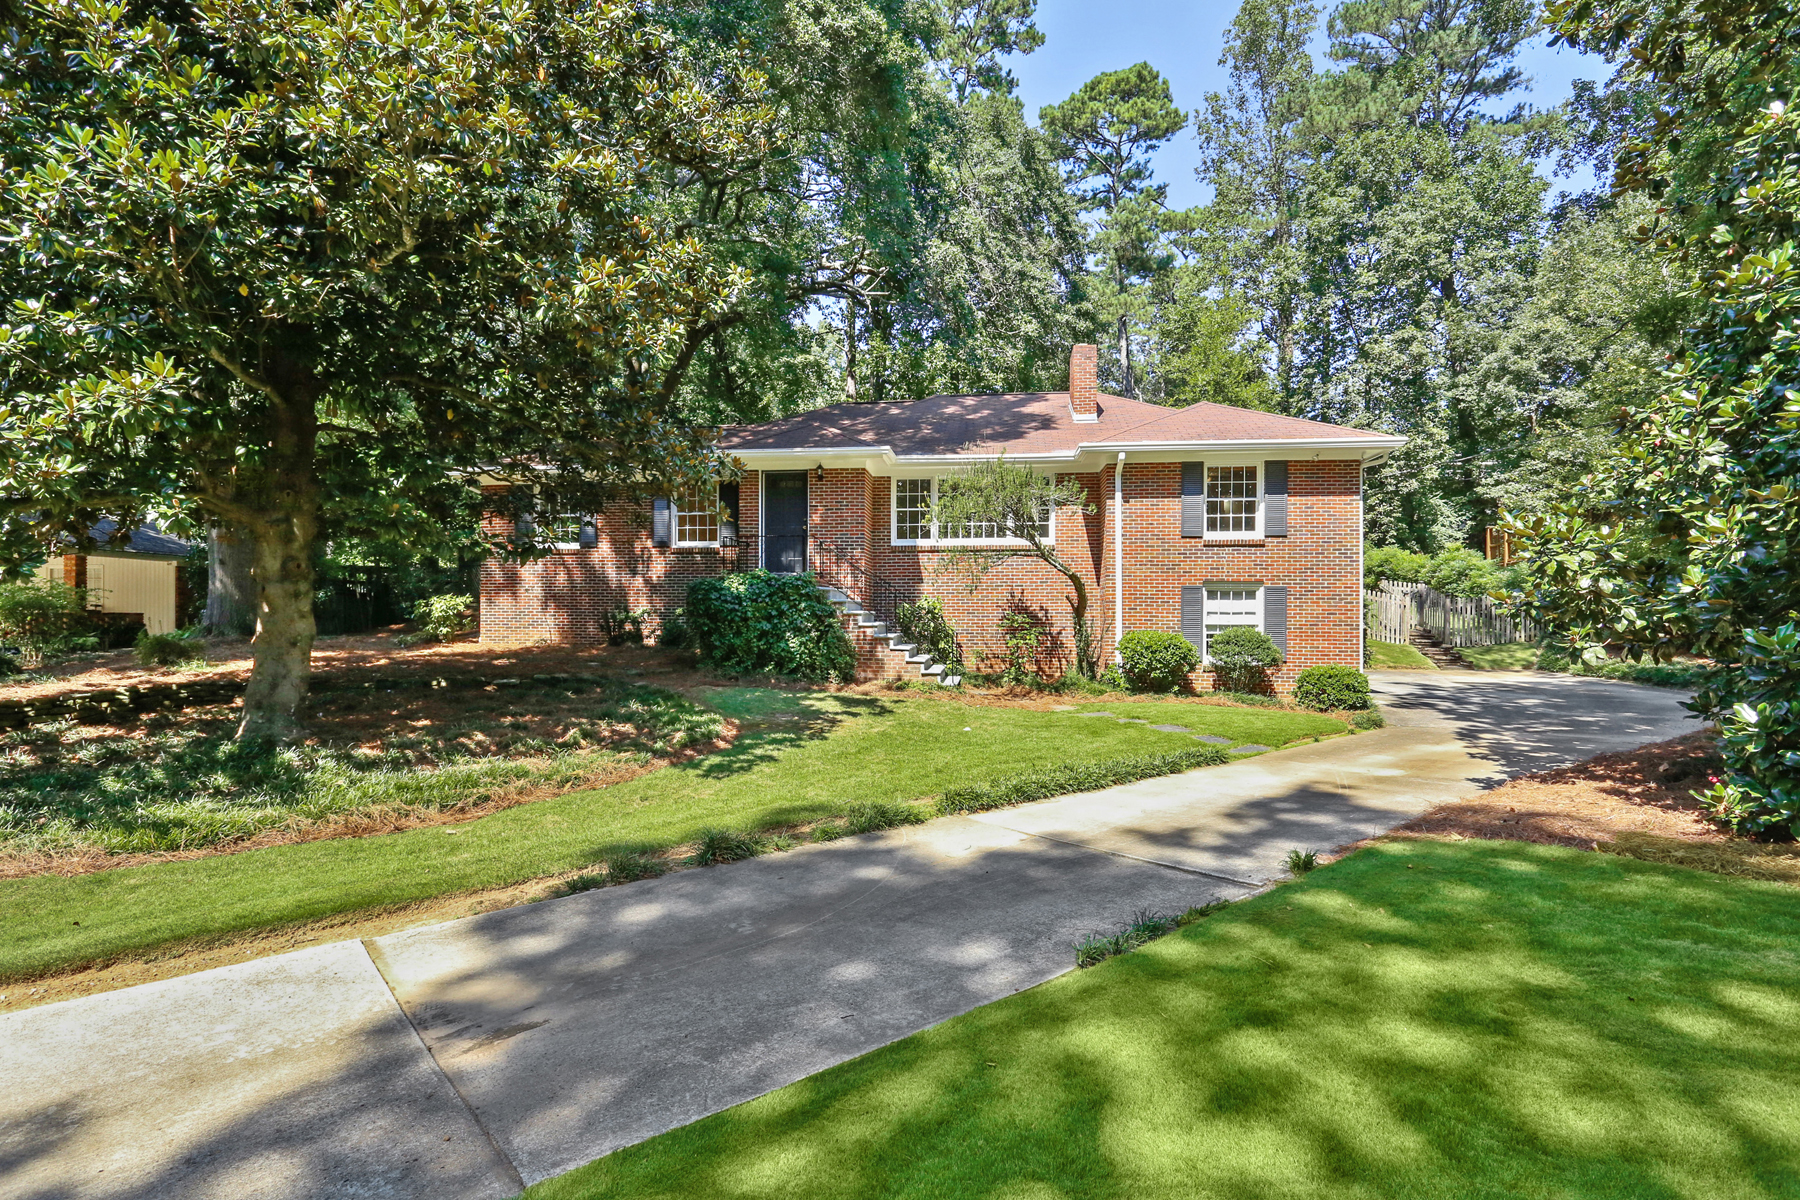 Single Family Home for Sale at Charming Brick Ranch On A Large Lot With Incredible Backyard 388 Lakemoore Drive NE Atlanta, Georgia 30342 United States